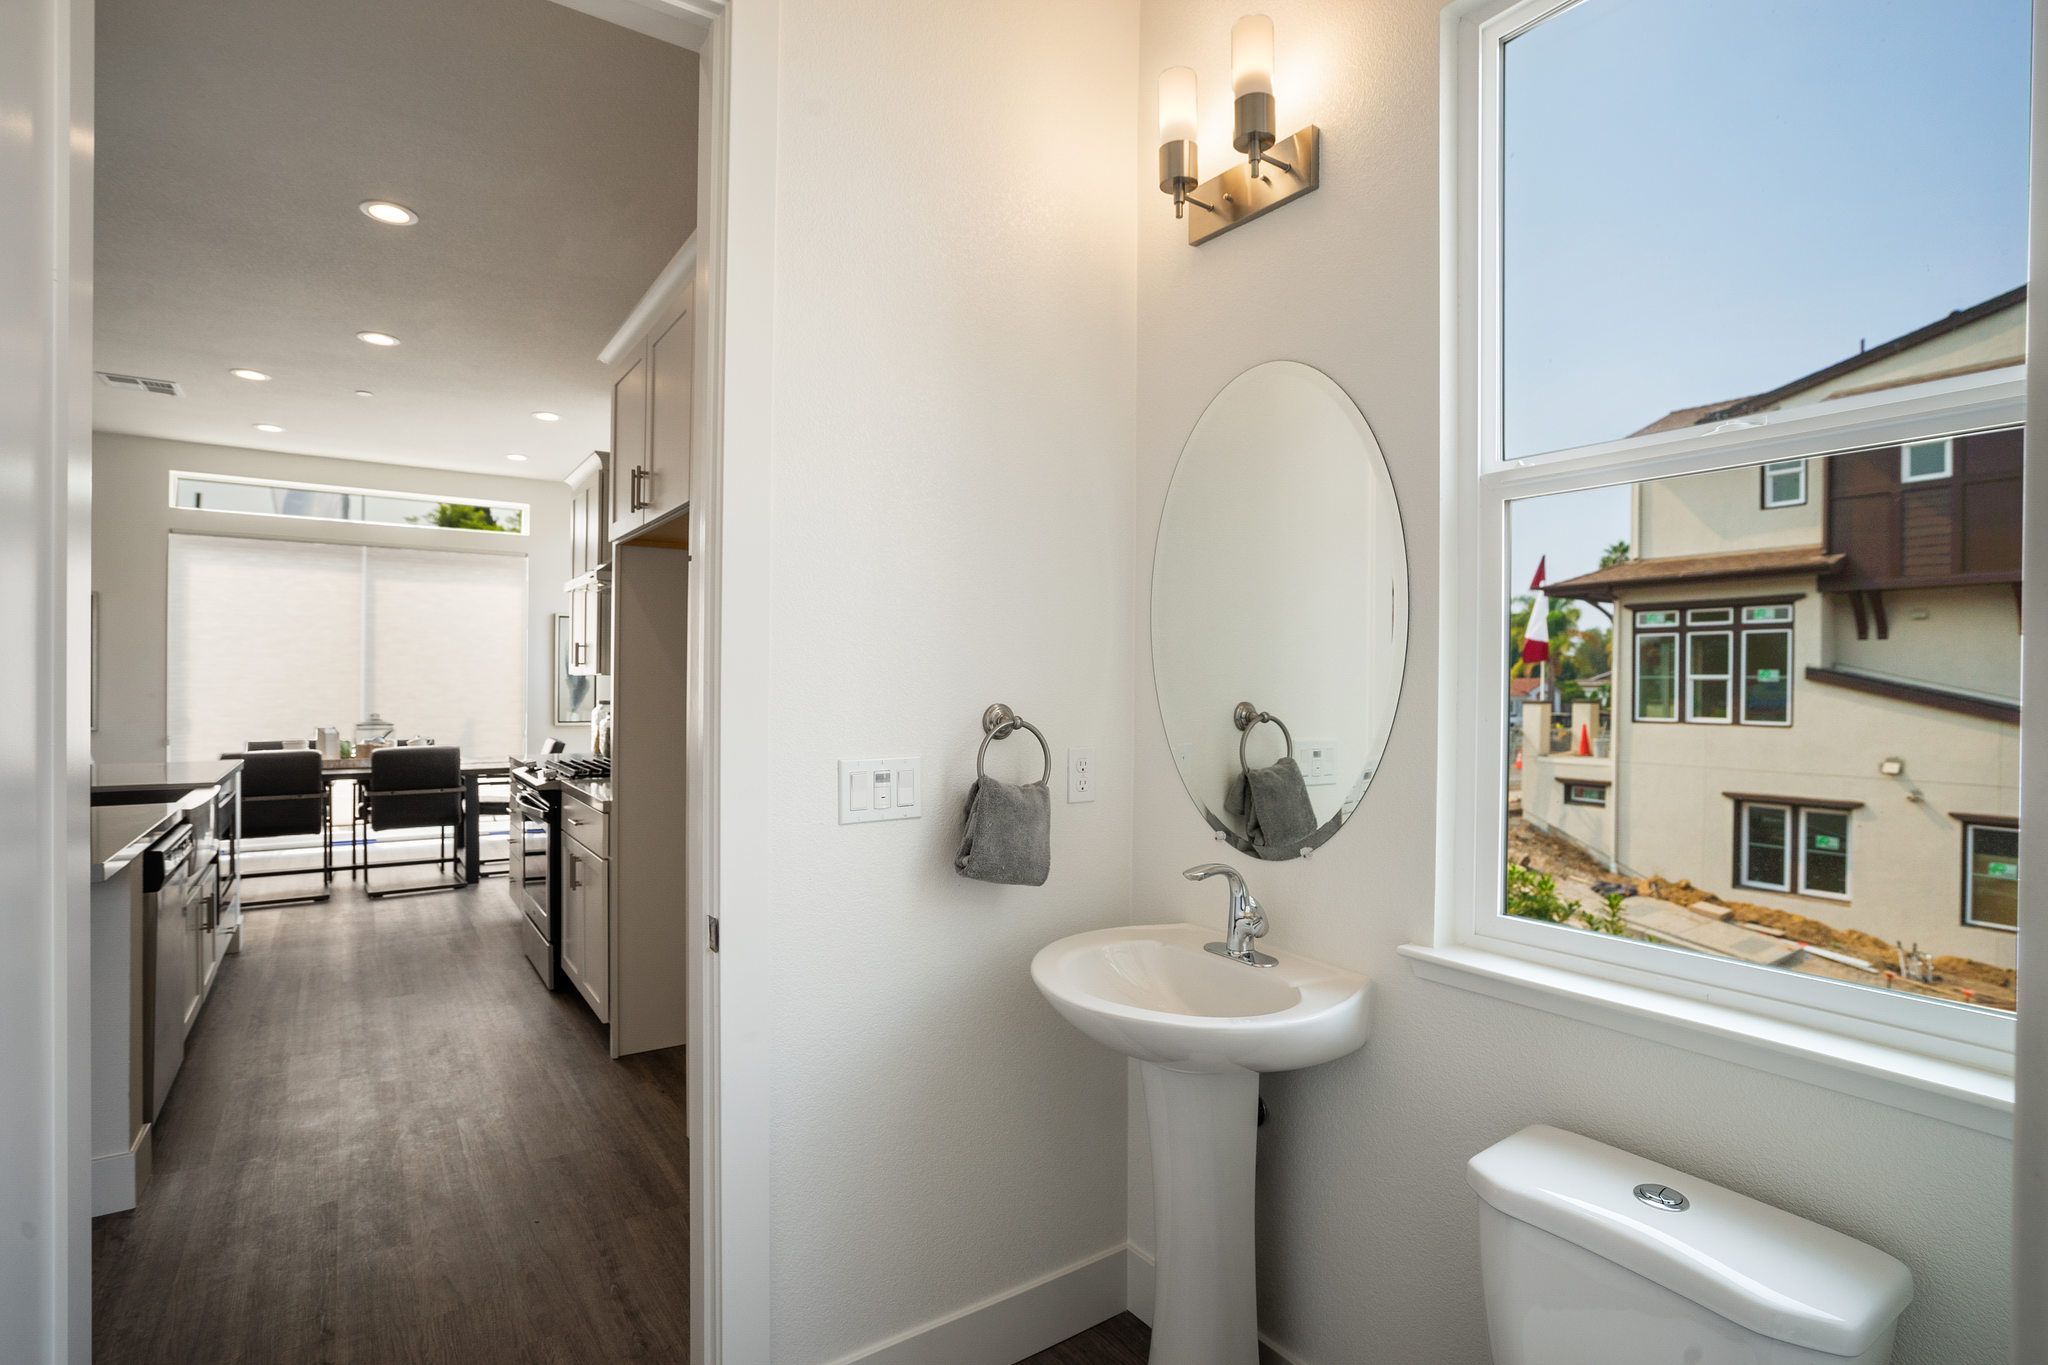 Bathroom featured in the Plan 1 By Pan Cal in Oakland-Alameda, CA